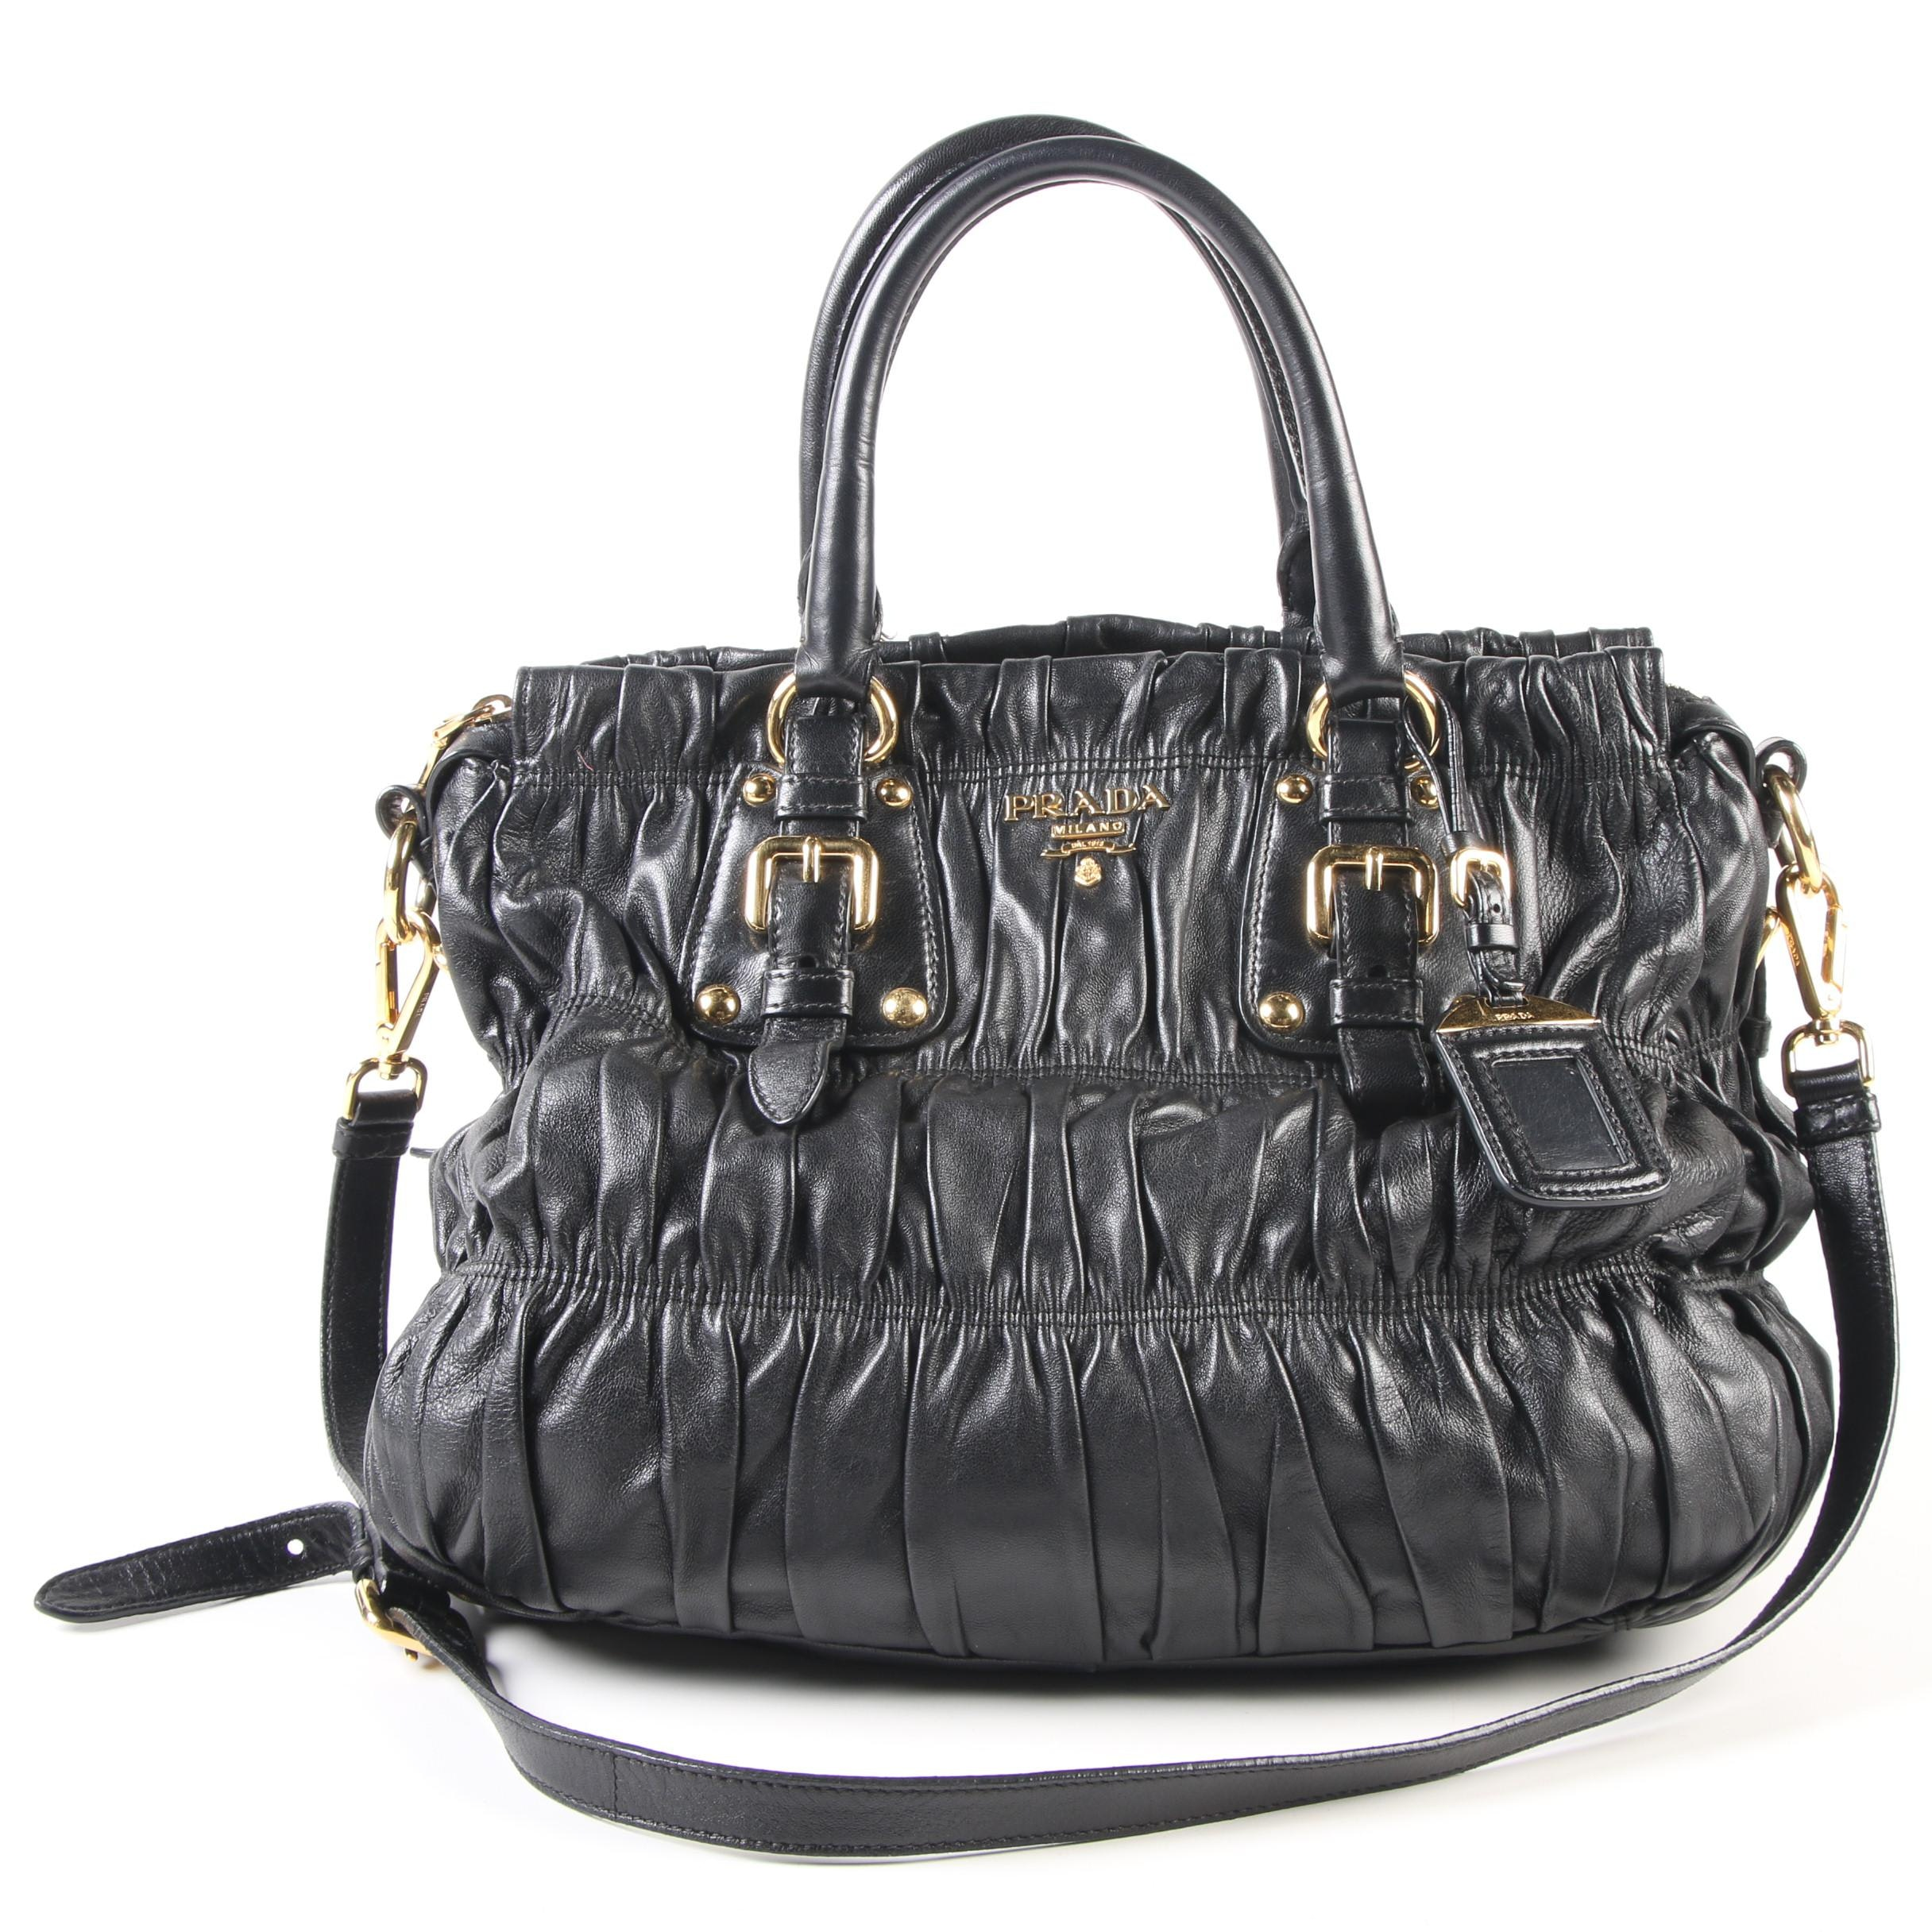 Prada Gaufre Ruched Black Nappa Leather Convertible Tote